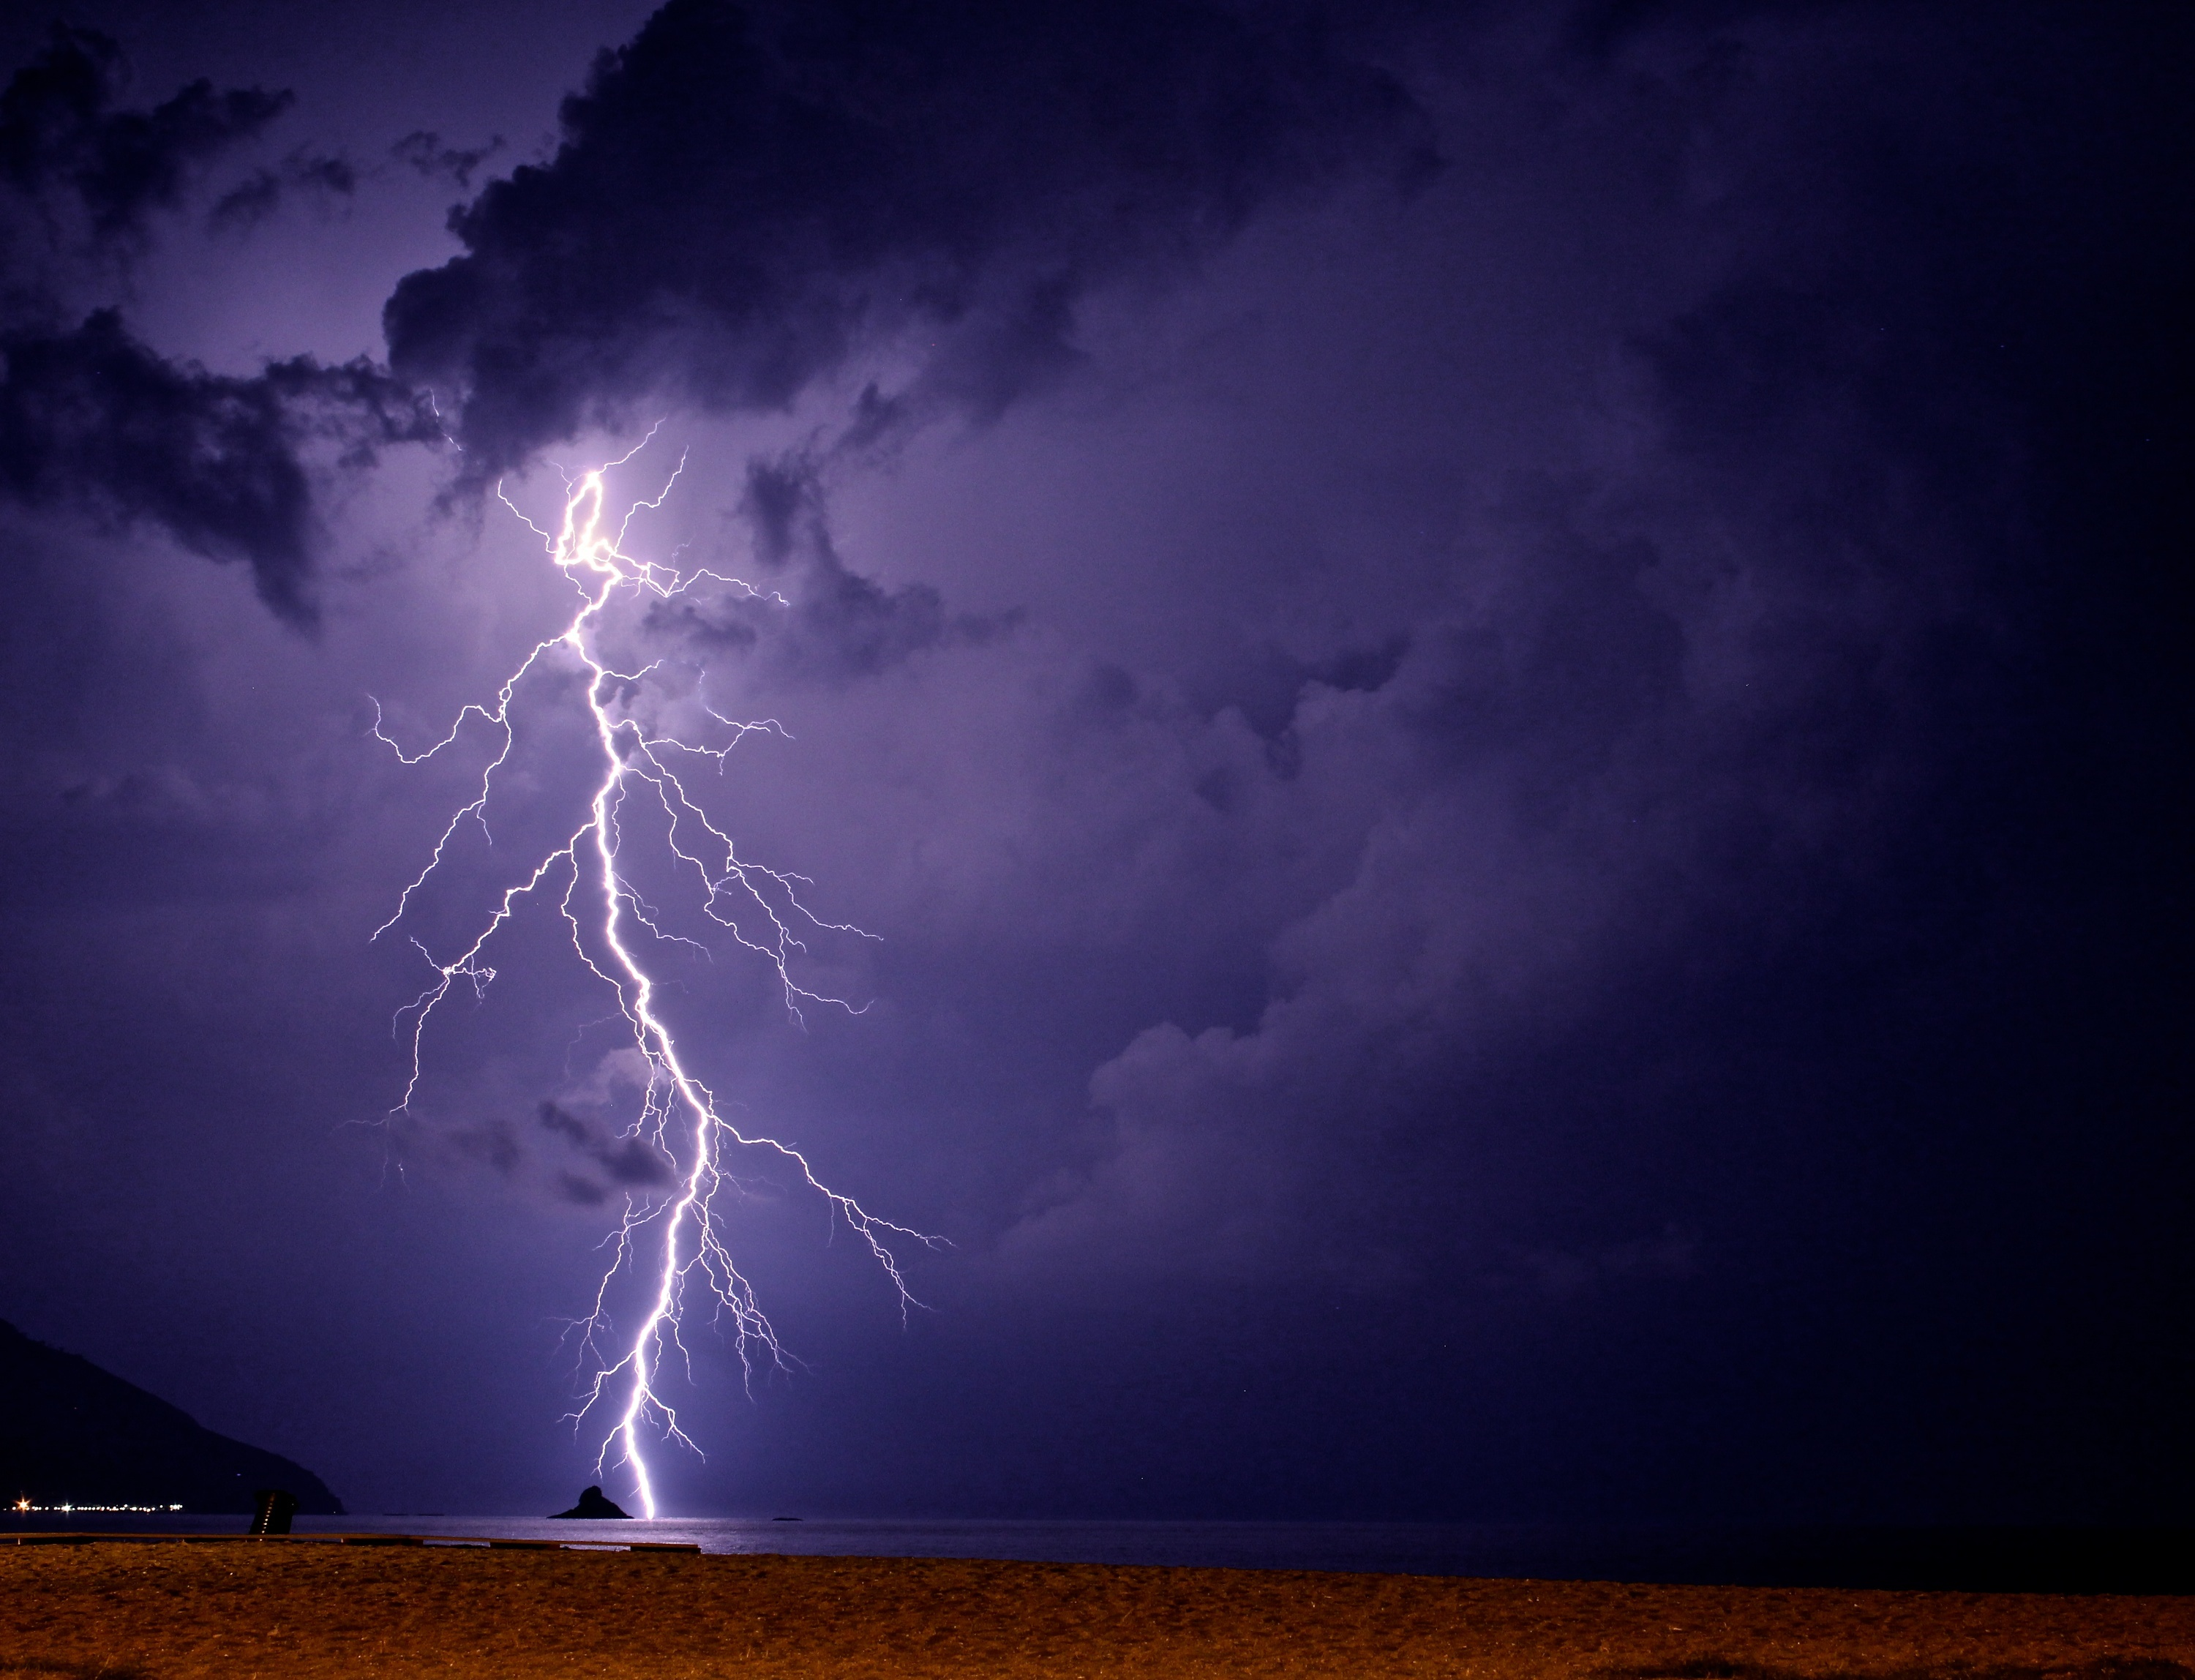 a description of thunderstorms as where lightning and thunder occur A storm of heavy rain accompanied by lightning, thunder, wind, and sometimes hail thunderstorms occur when moist air near the ground becomes heated, especially in the summer, and rises, forming cumulonimbus clouds that produce precipitation.